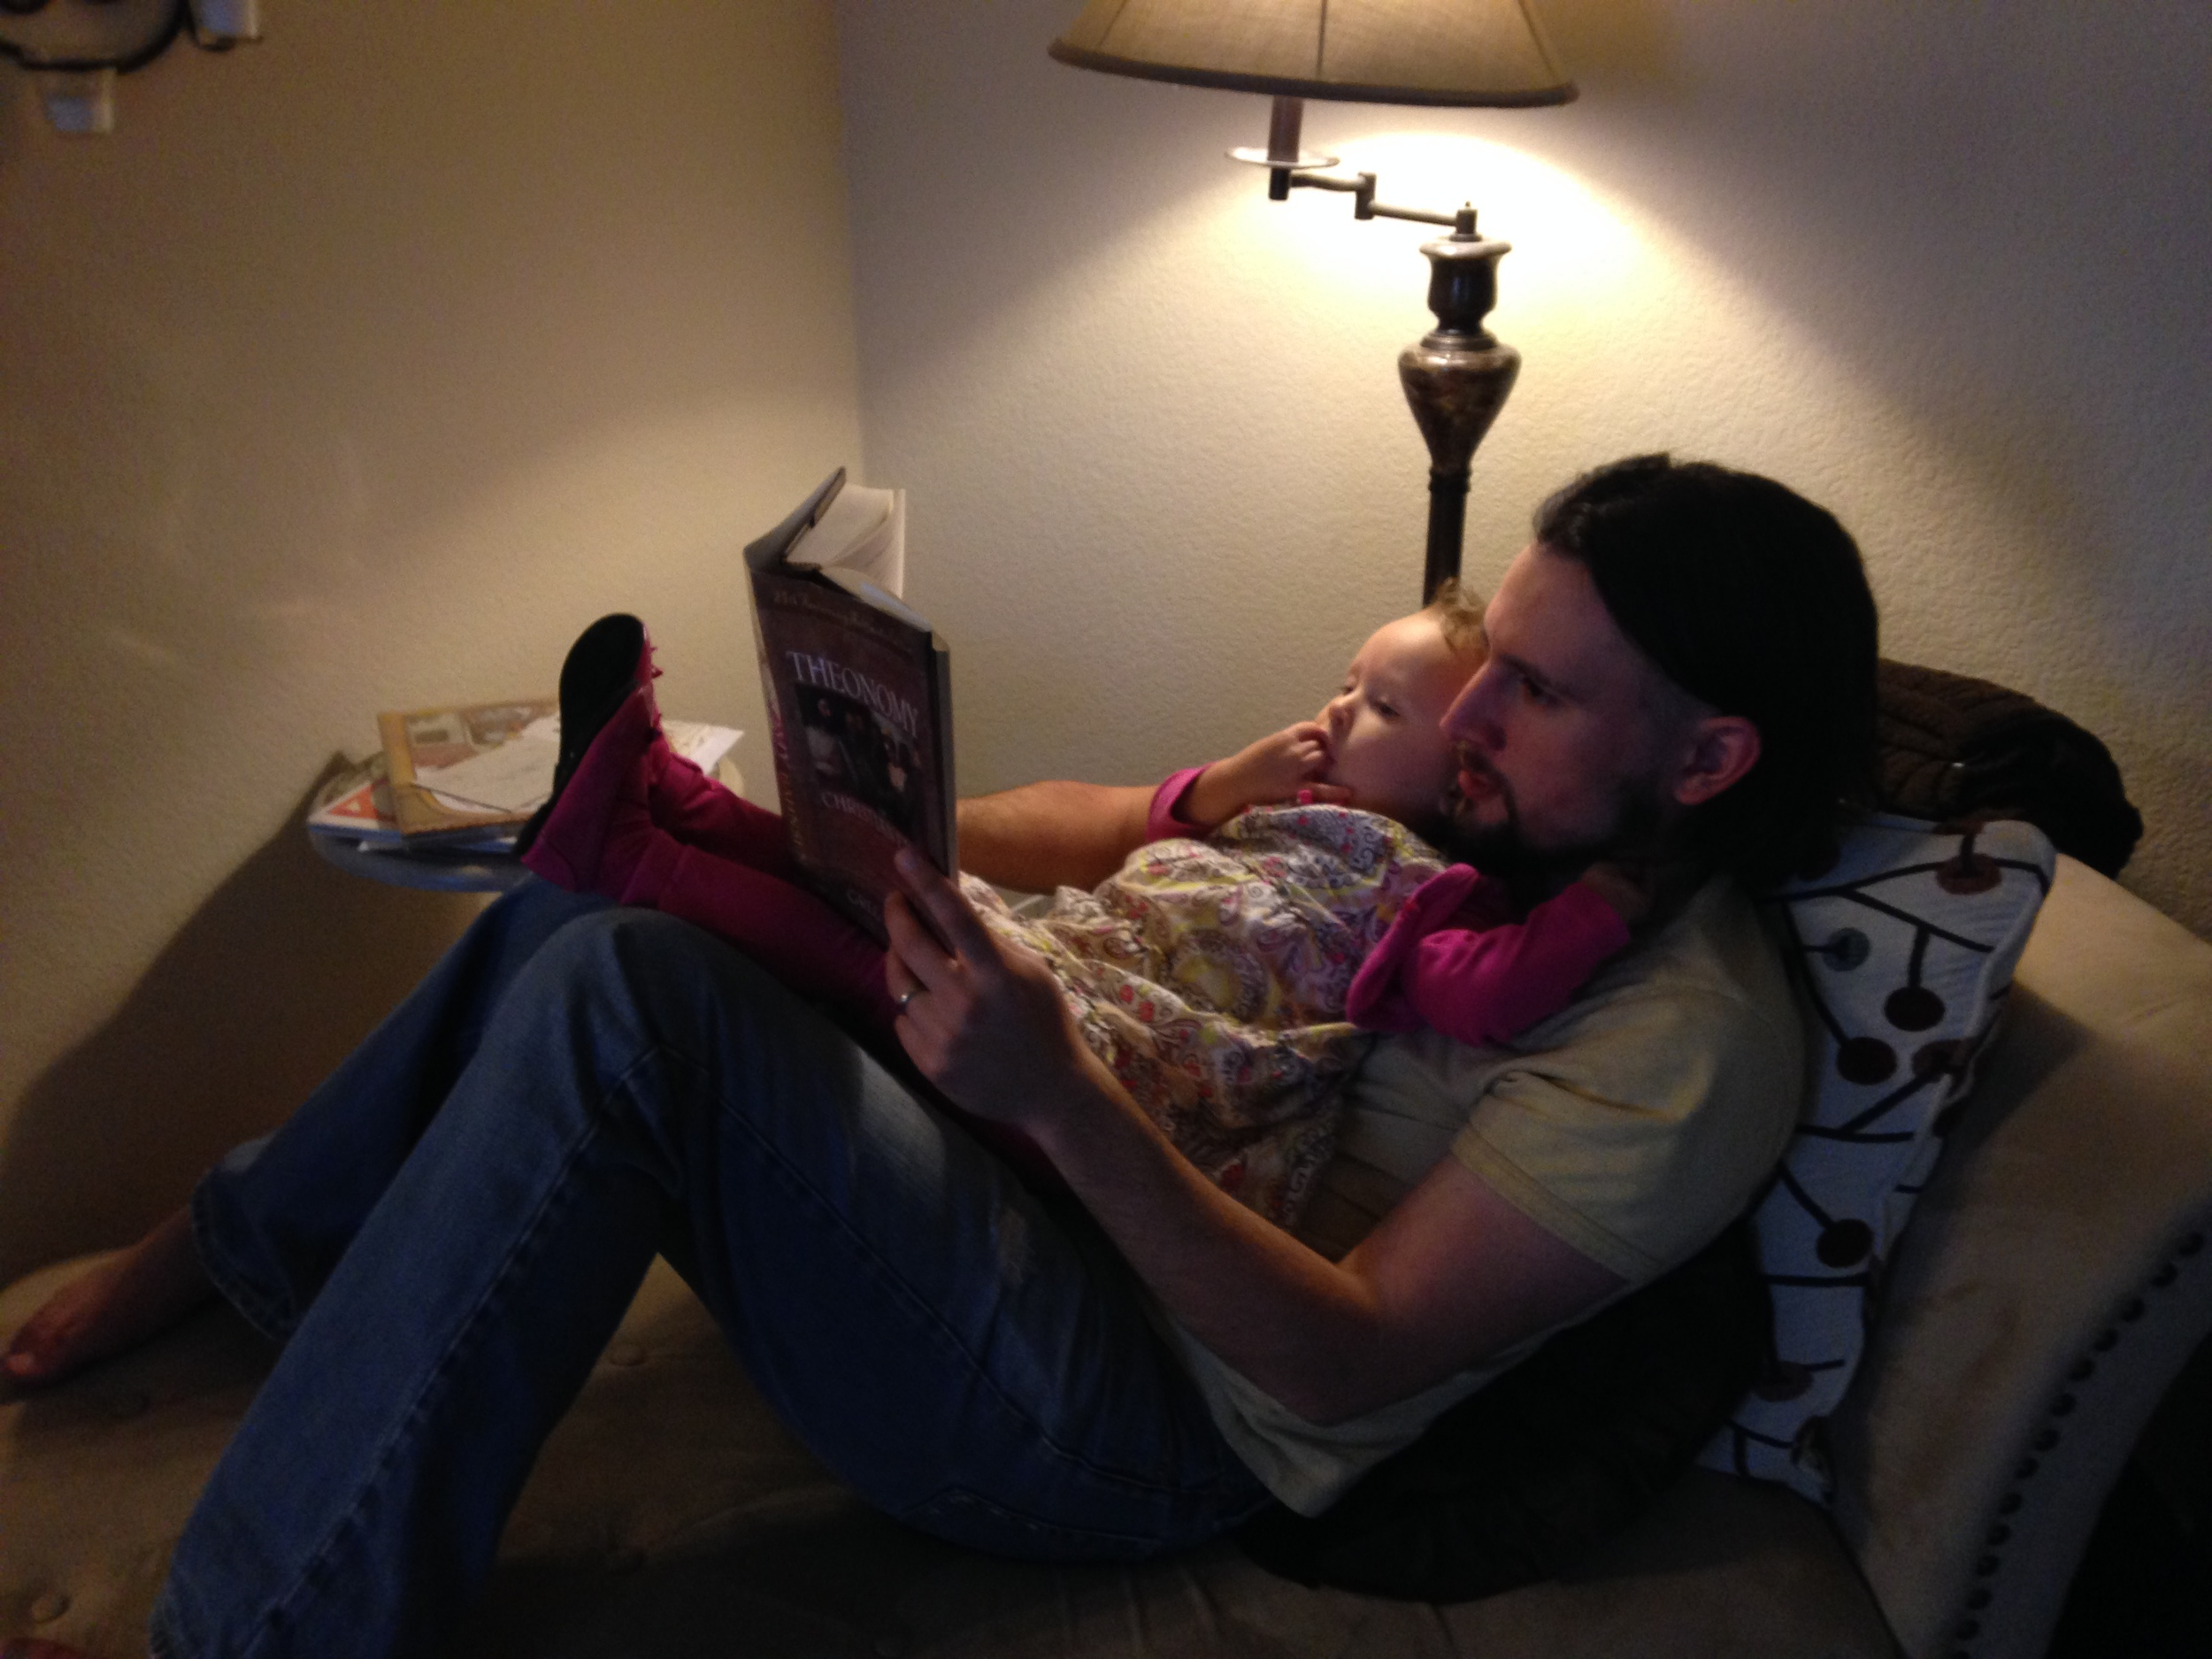 Tuesday - How else would one read at our house?